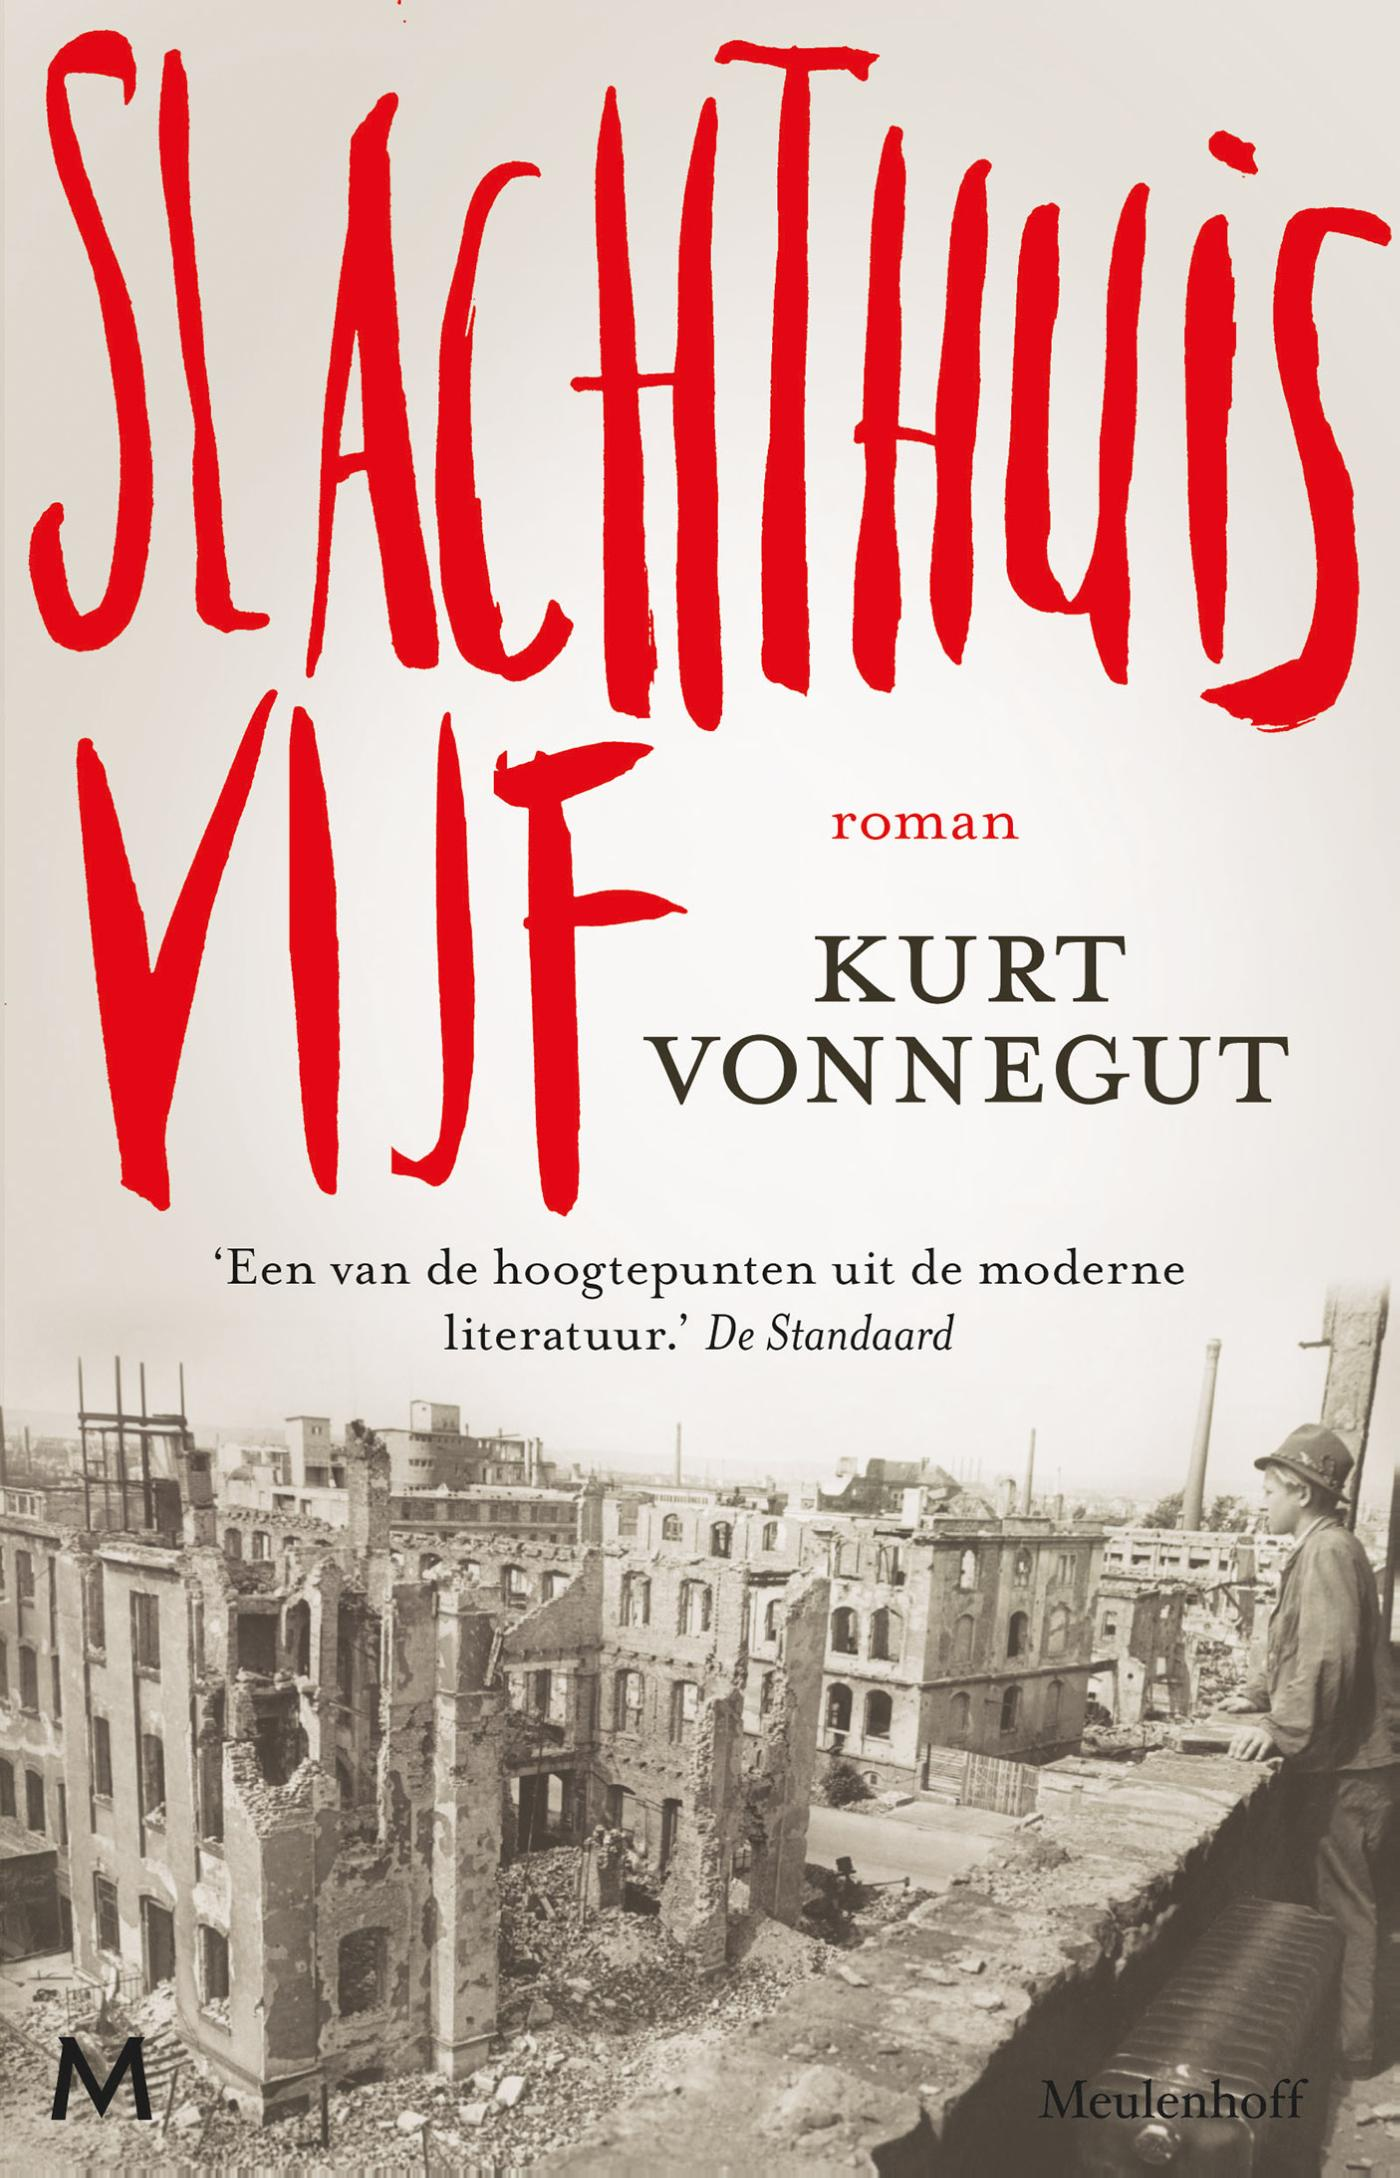 Cover Slachthuis vijf